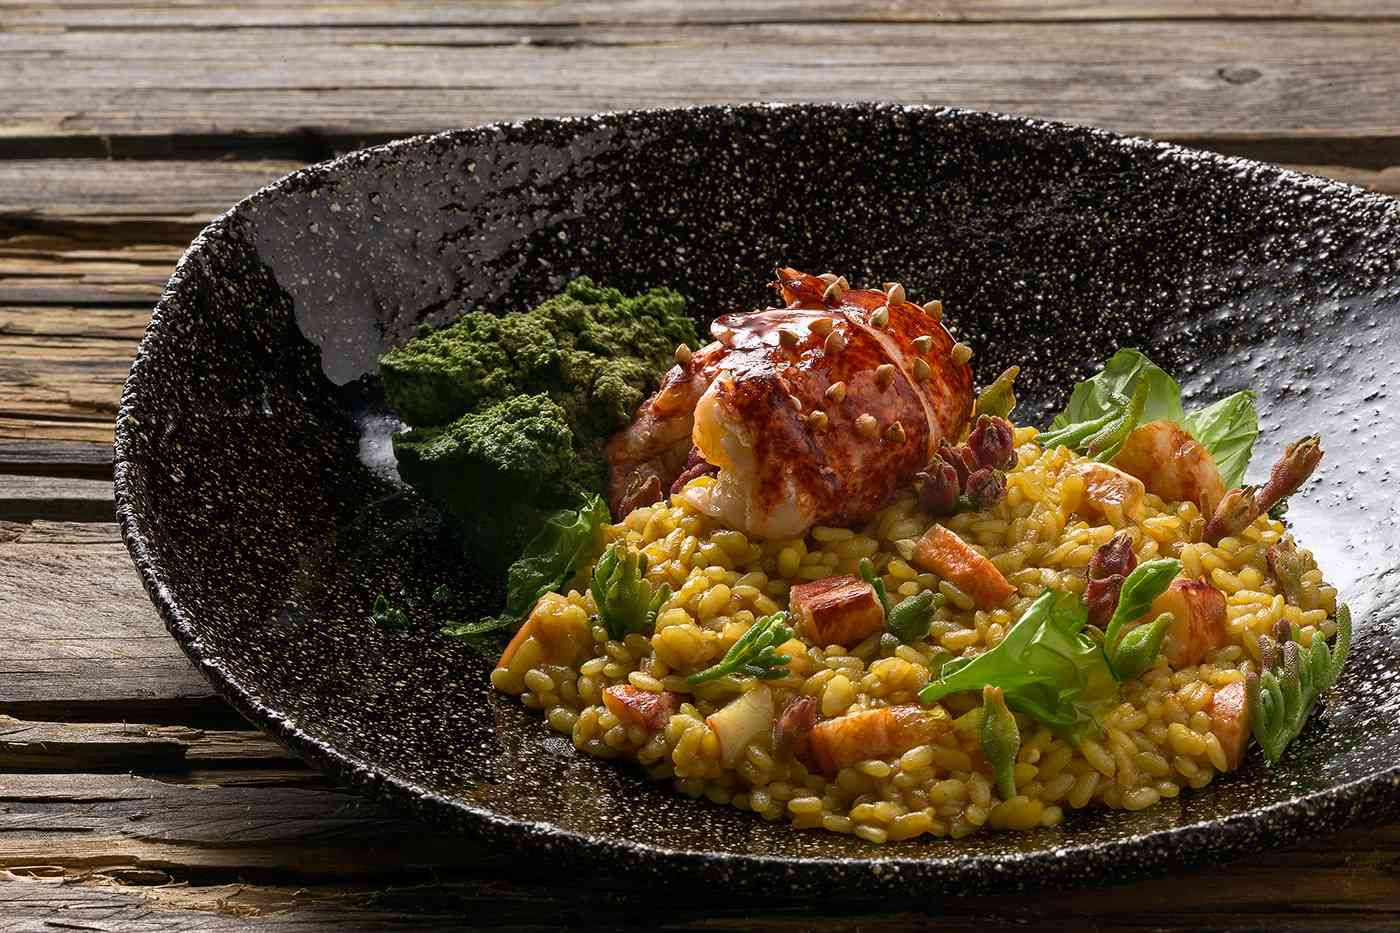 Lobster tail on top of risotto